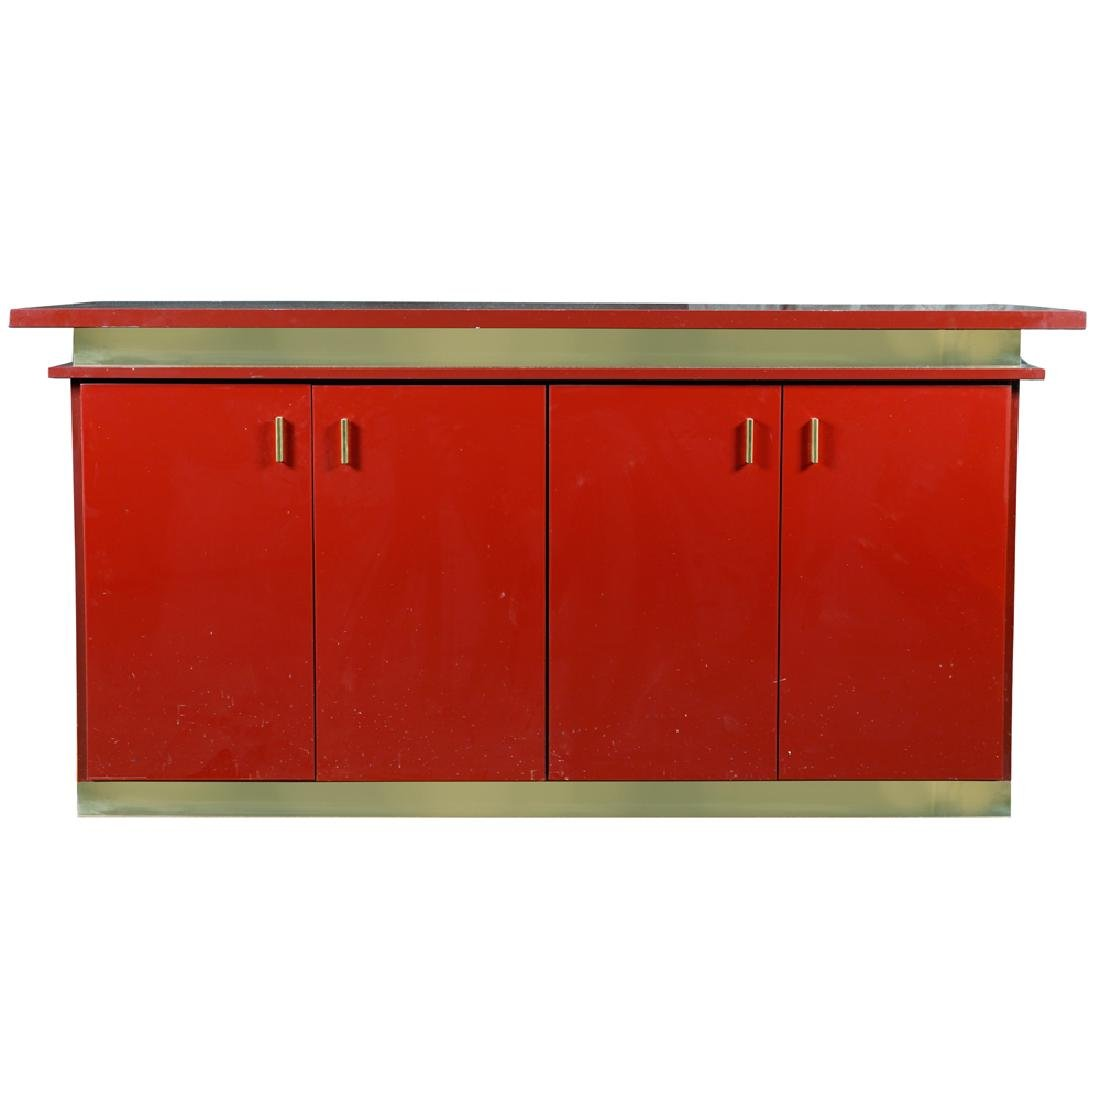 Red laminated wooden sideboard France 20th century